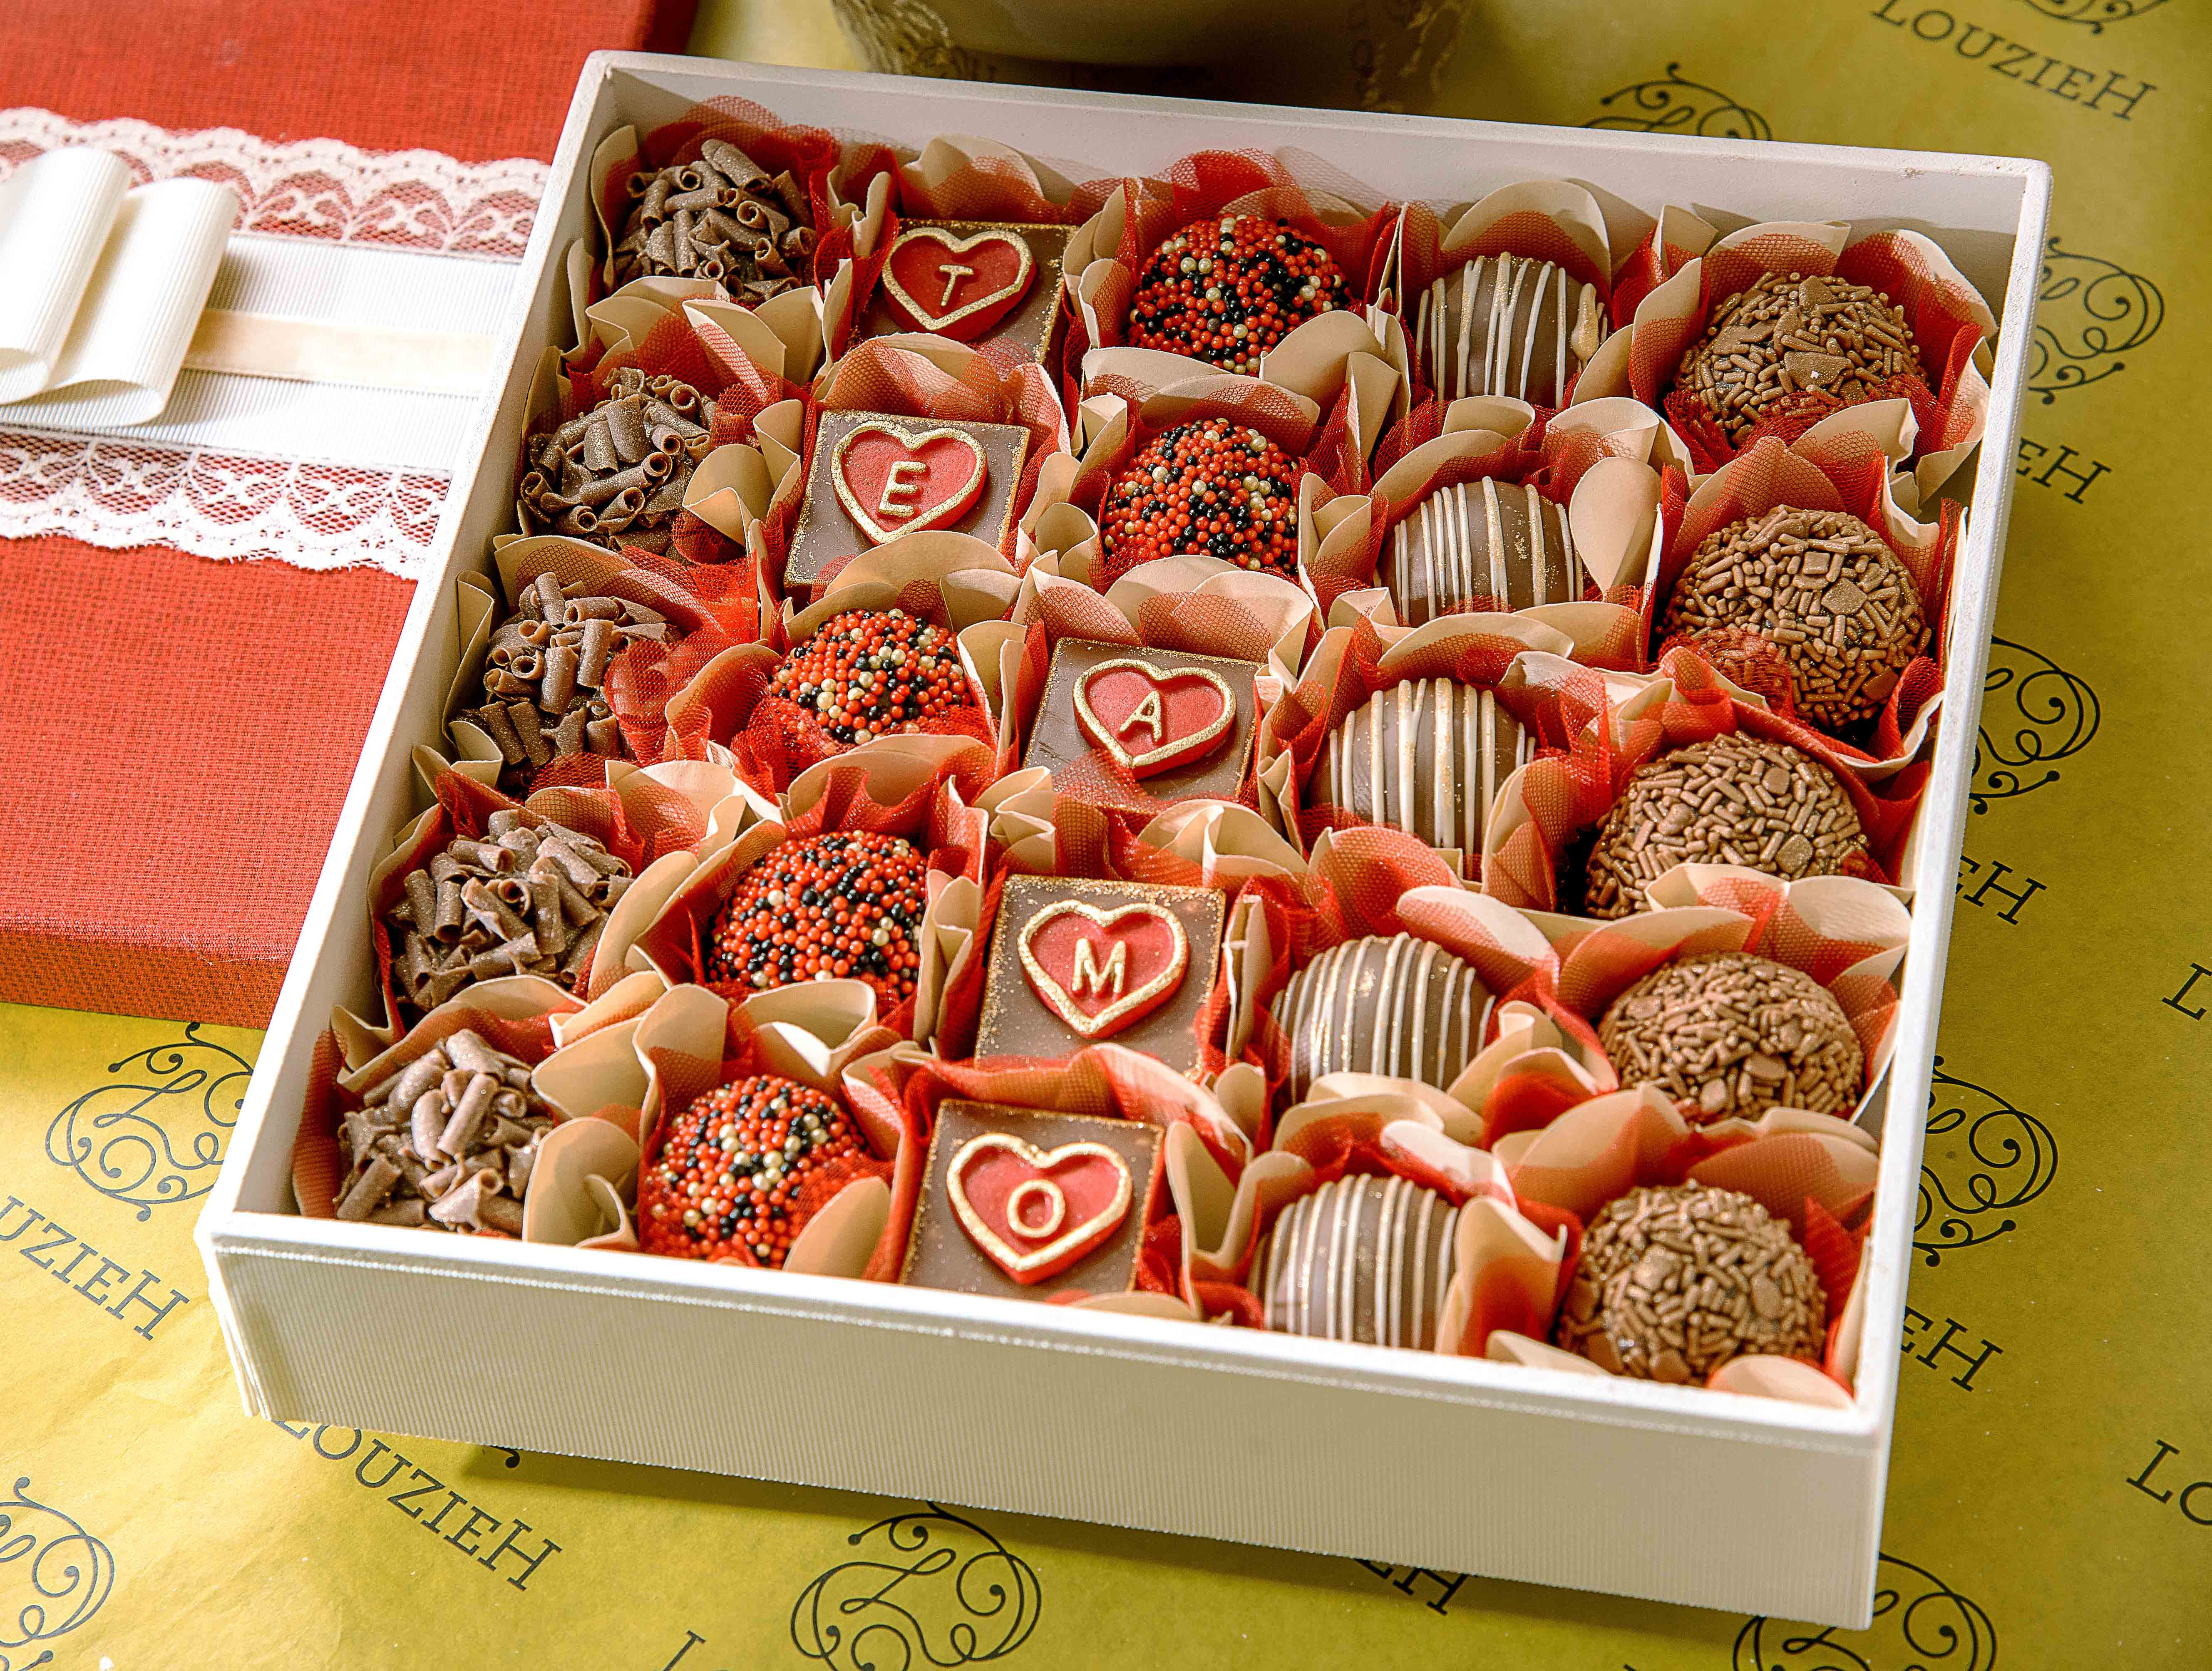 Lucy Sweets: Scatola in legno con dolci